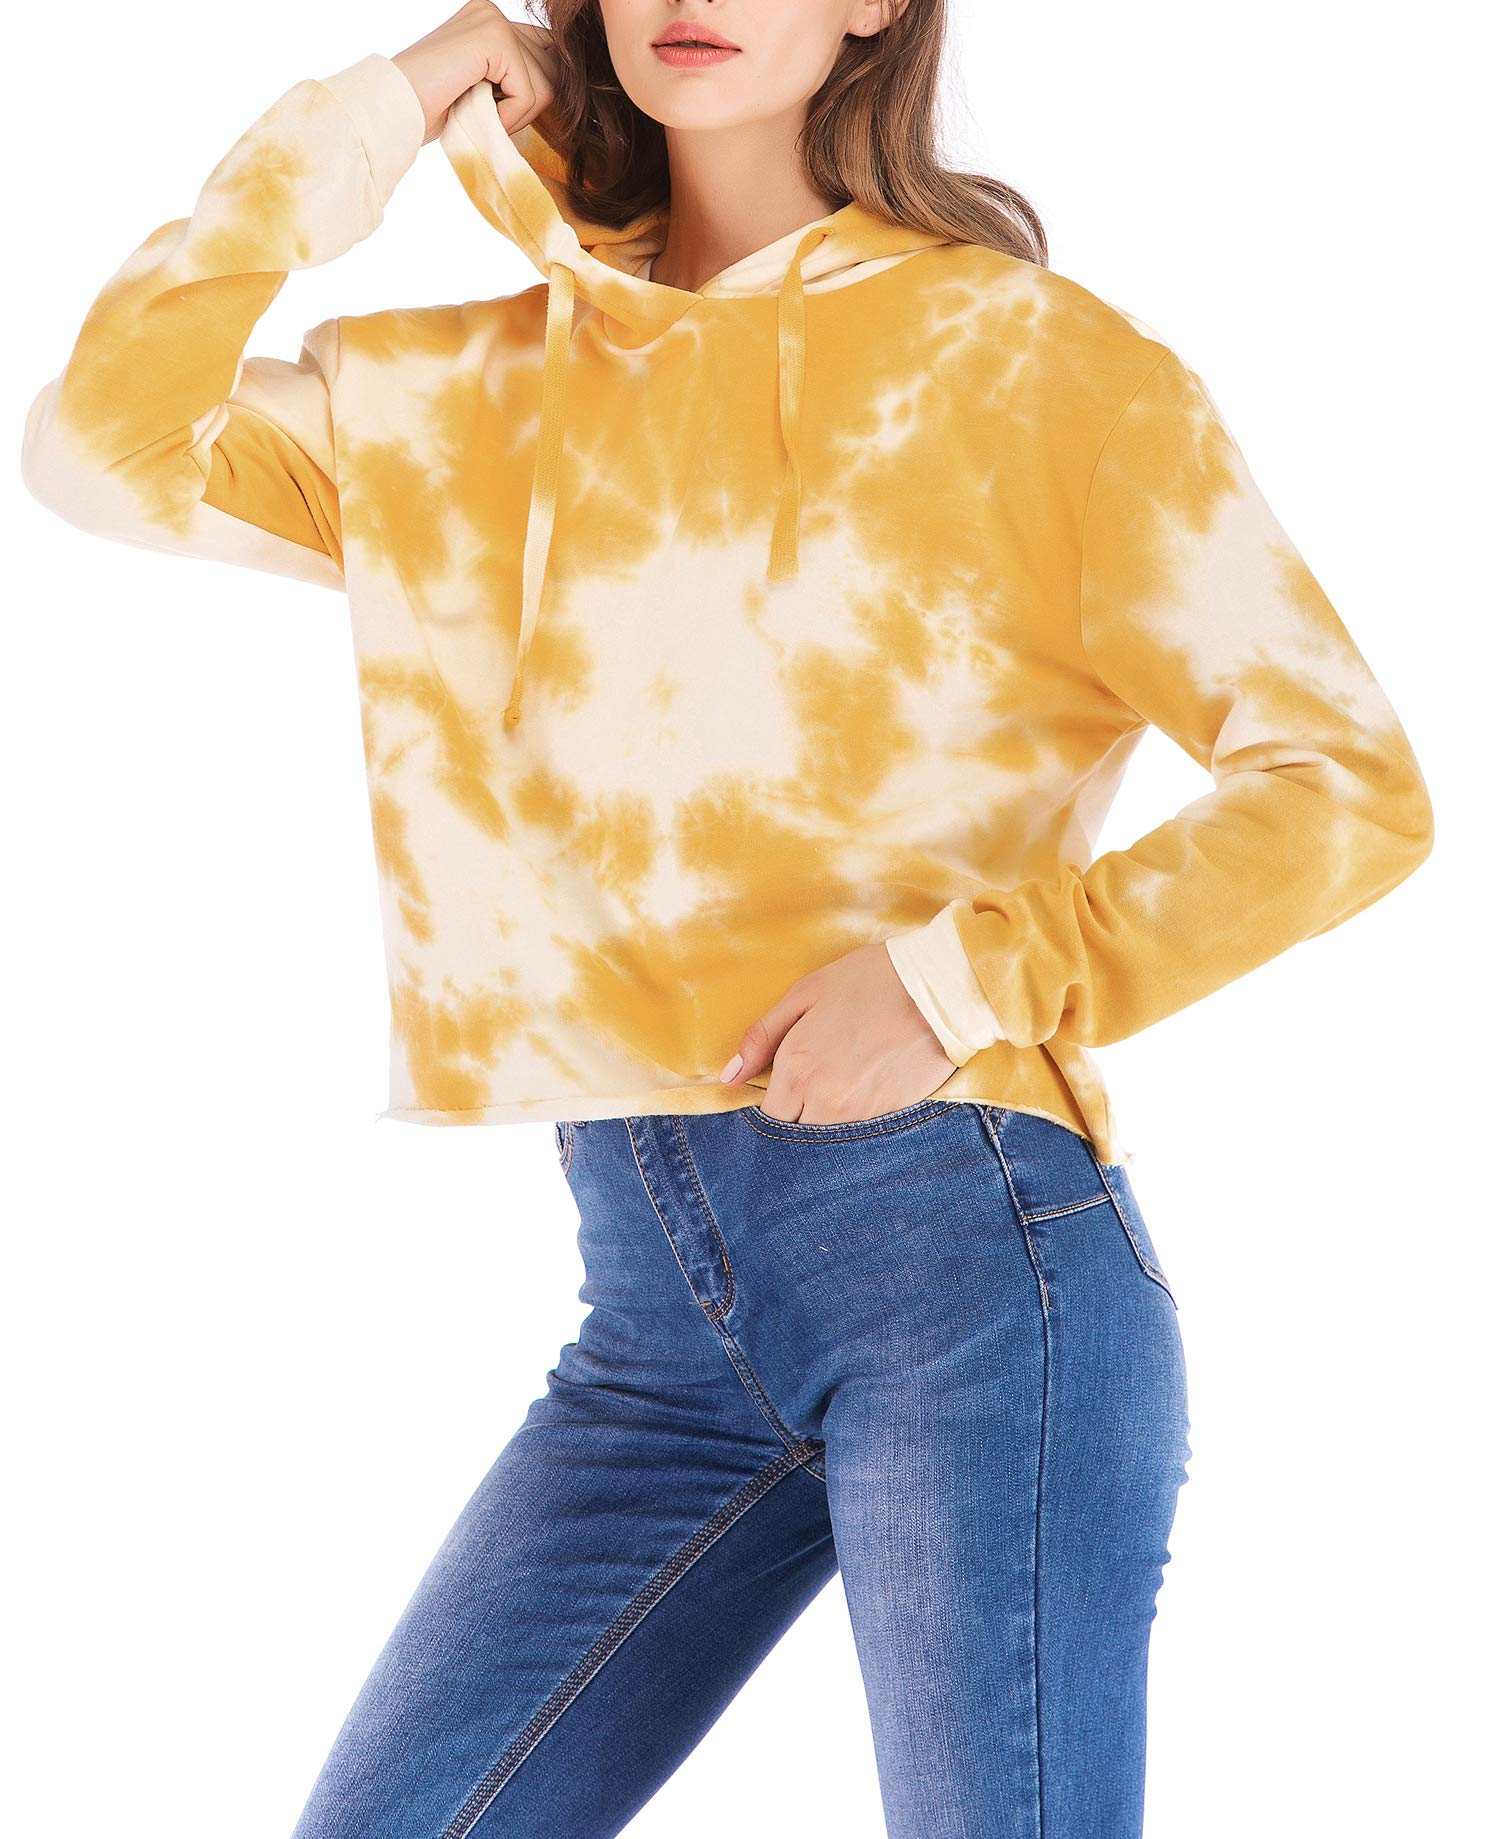 Eanklosco Womens Casual Long Sleeve Tie Dye Hoody (Yellow, M)